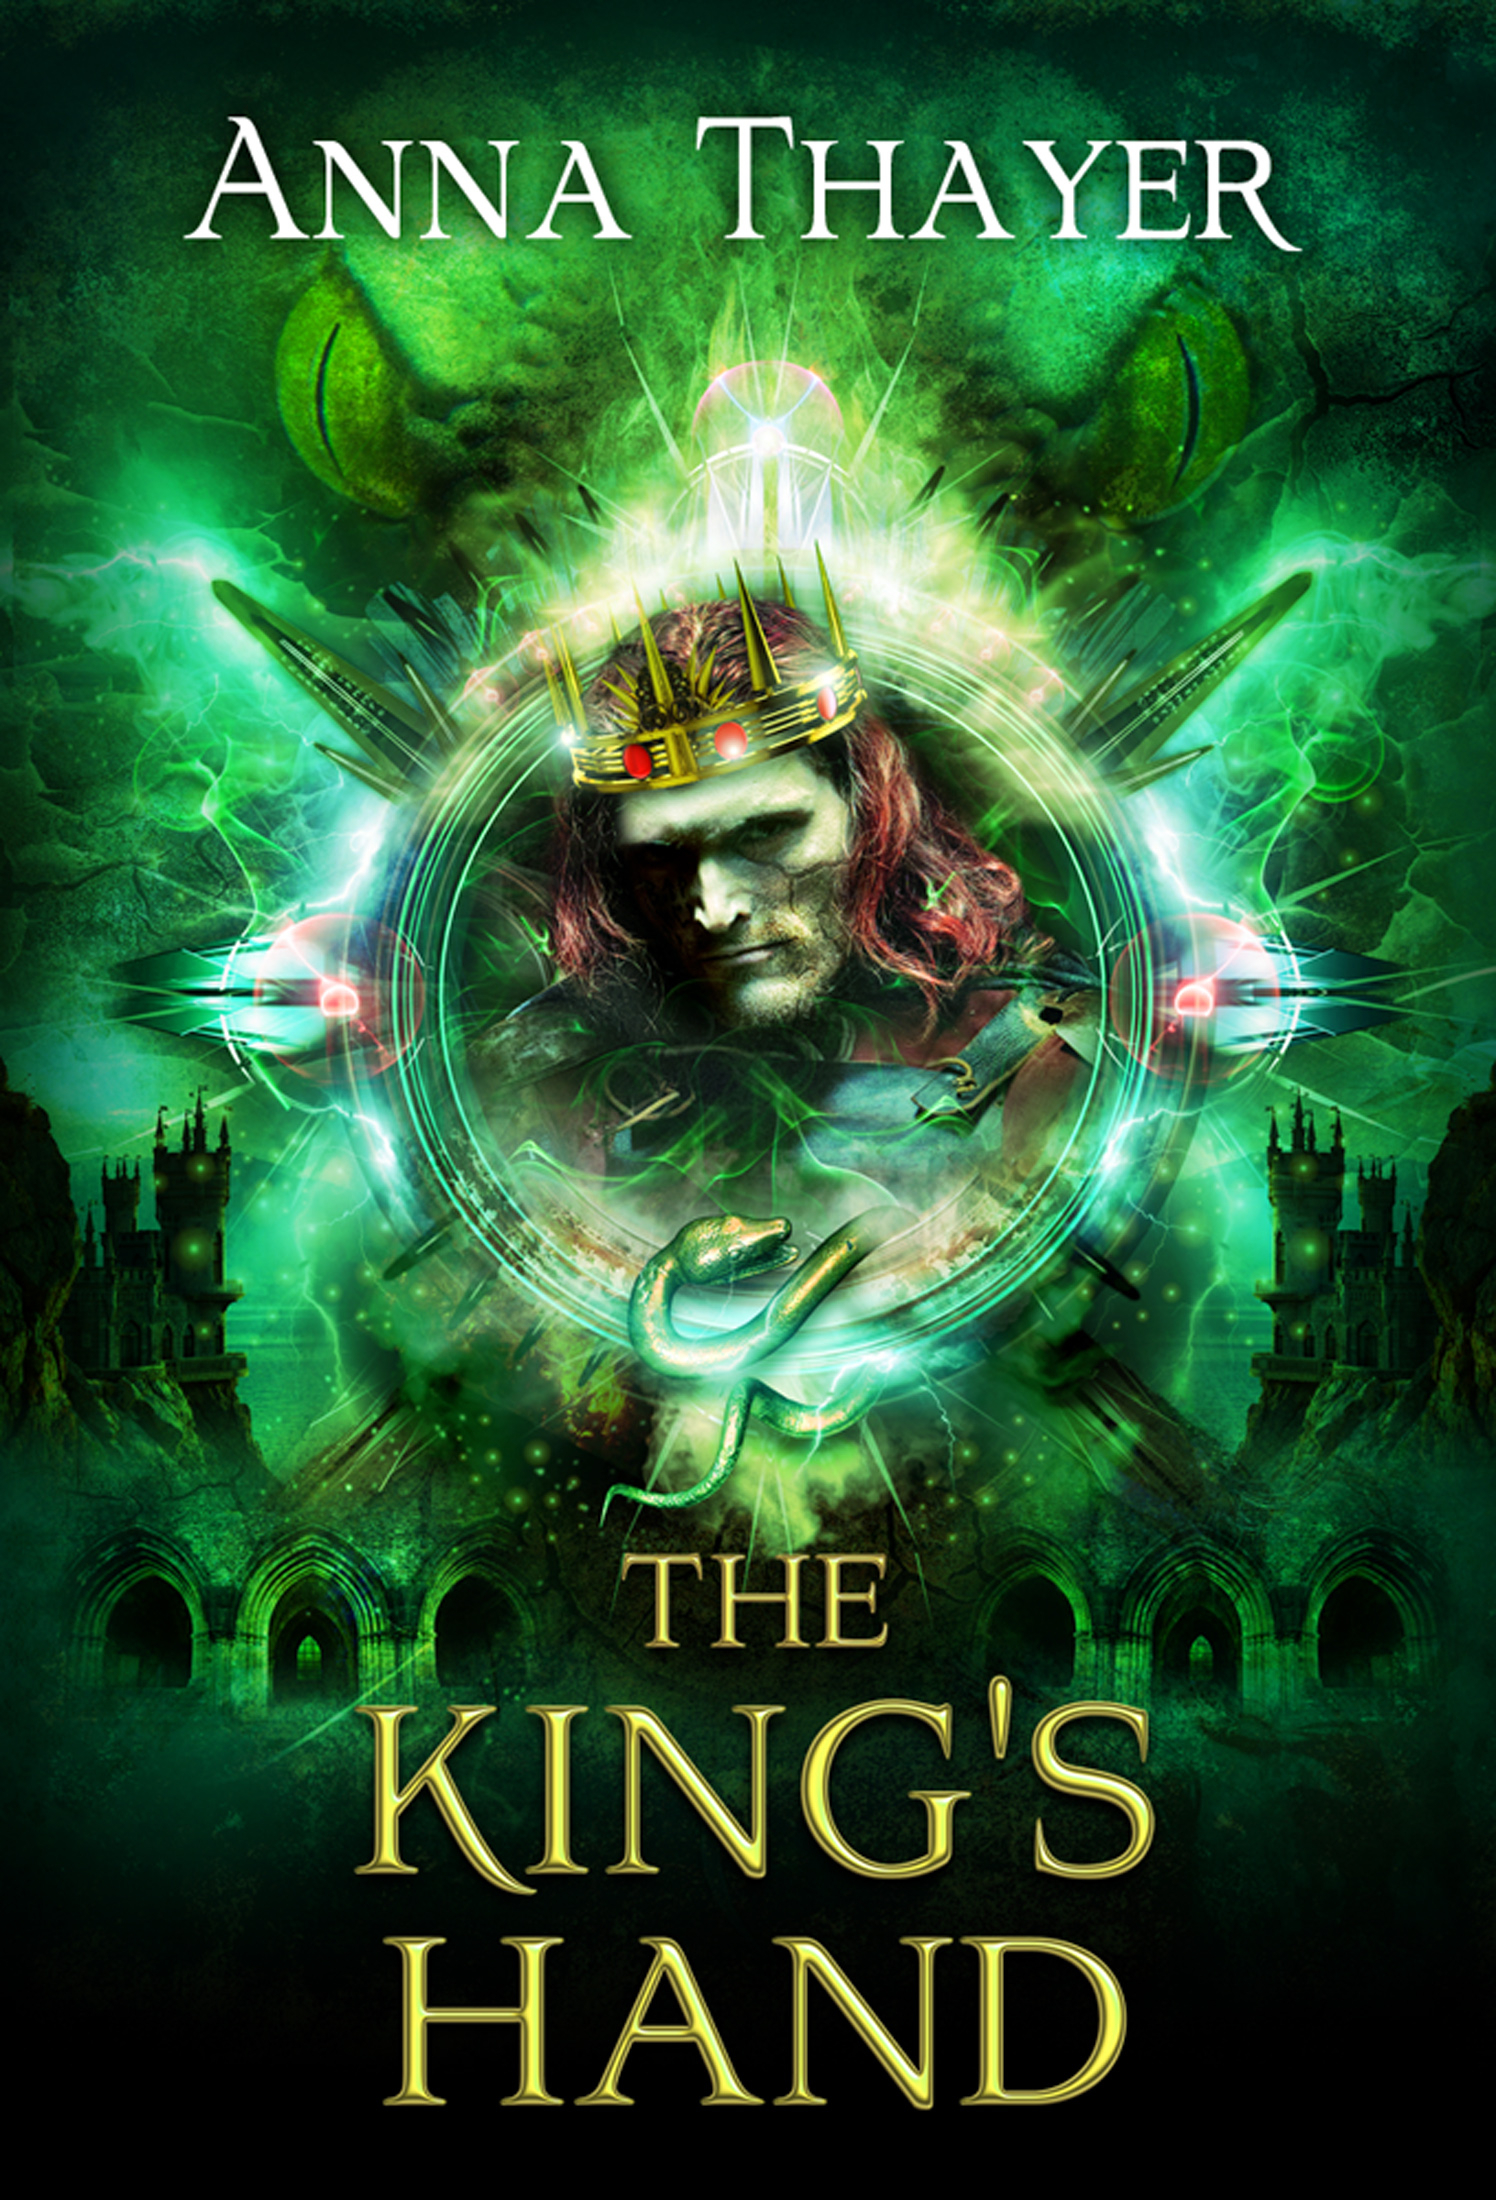 The King's Hand by Anna Thayer